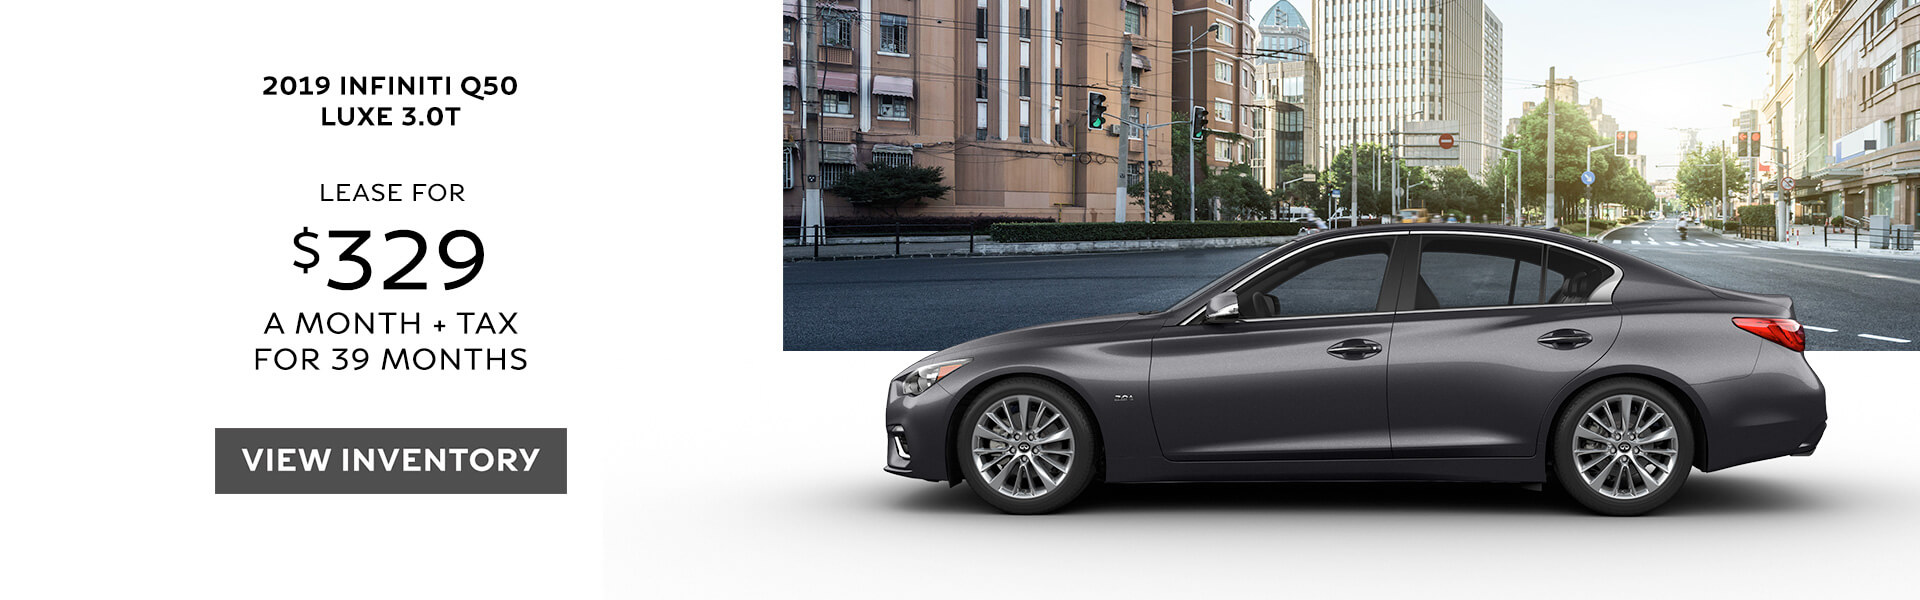 2018 Q50 - Lease for $339